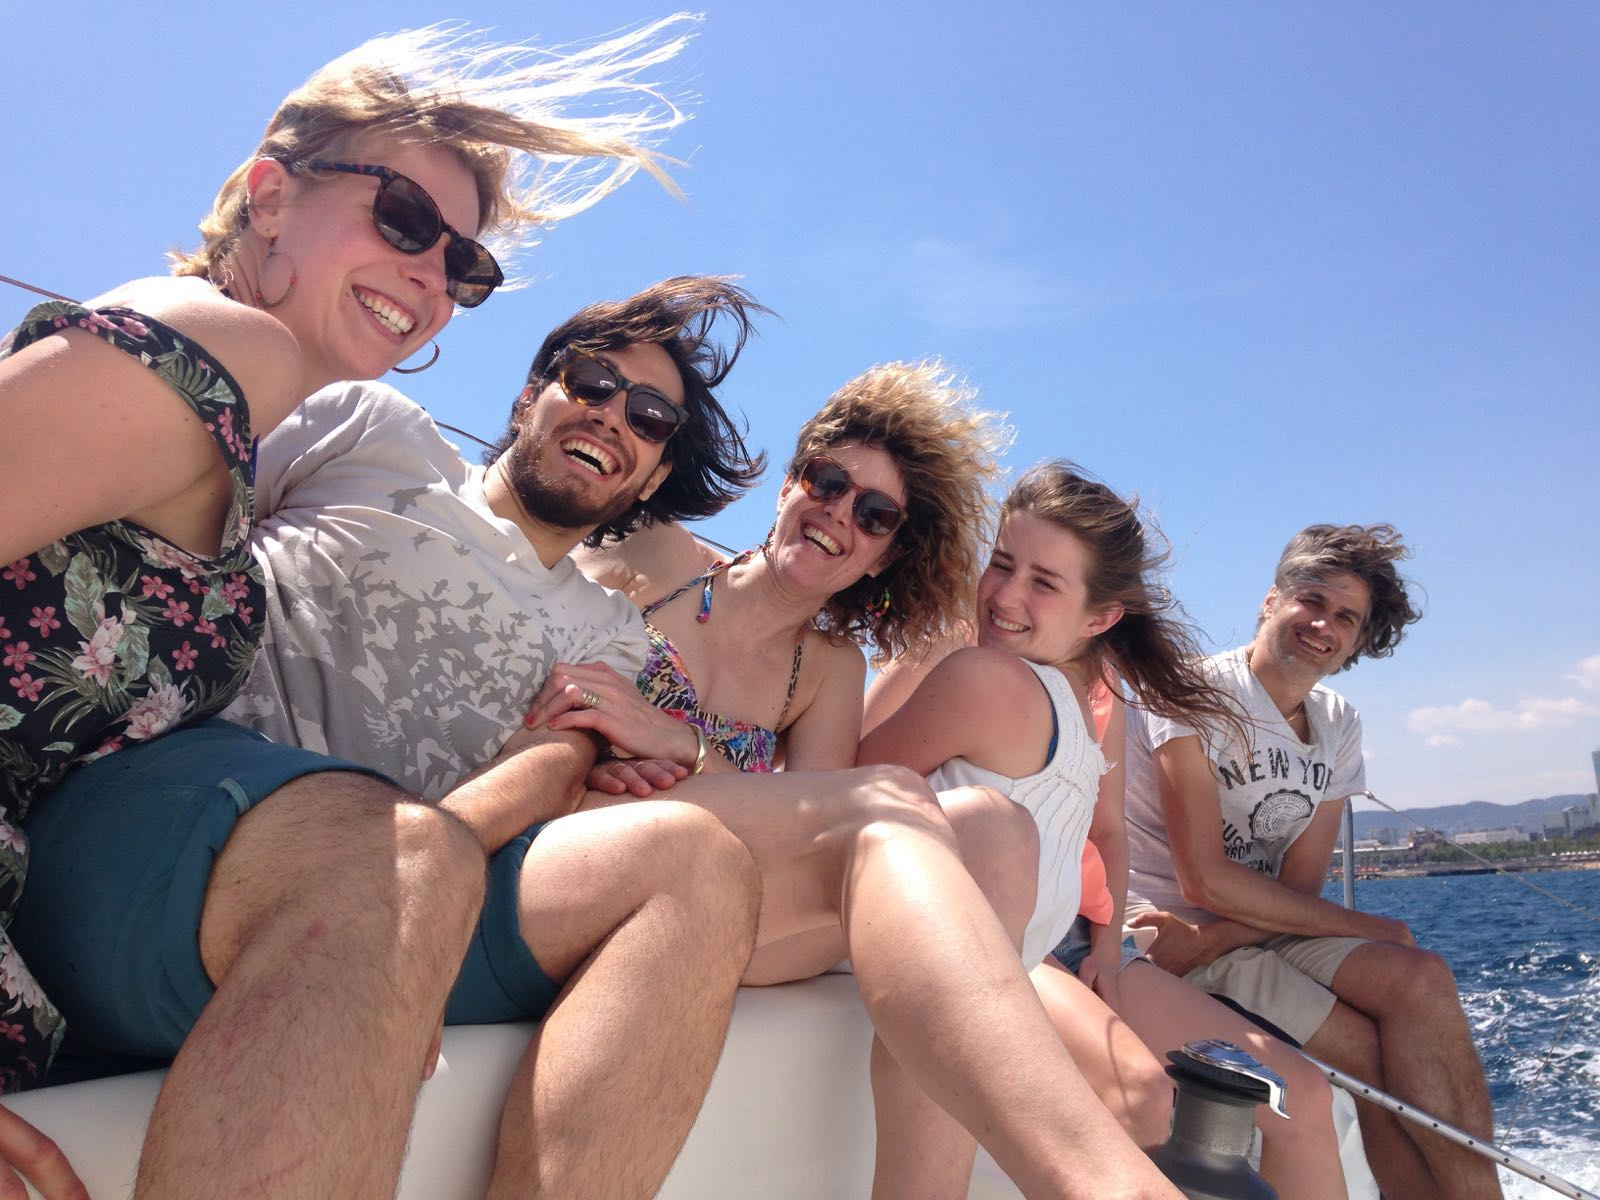 Sailing Trips with Fresh Healthy Food gives fun